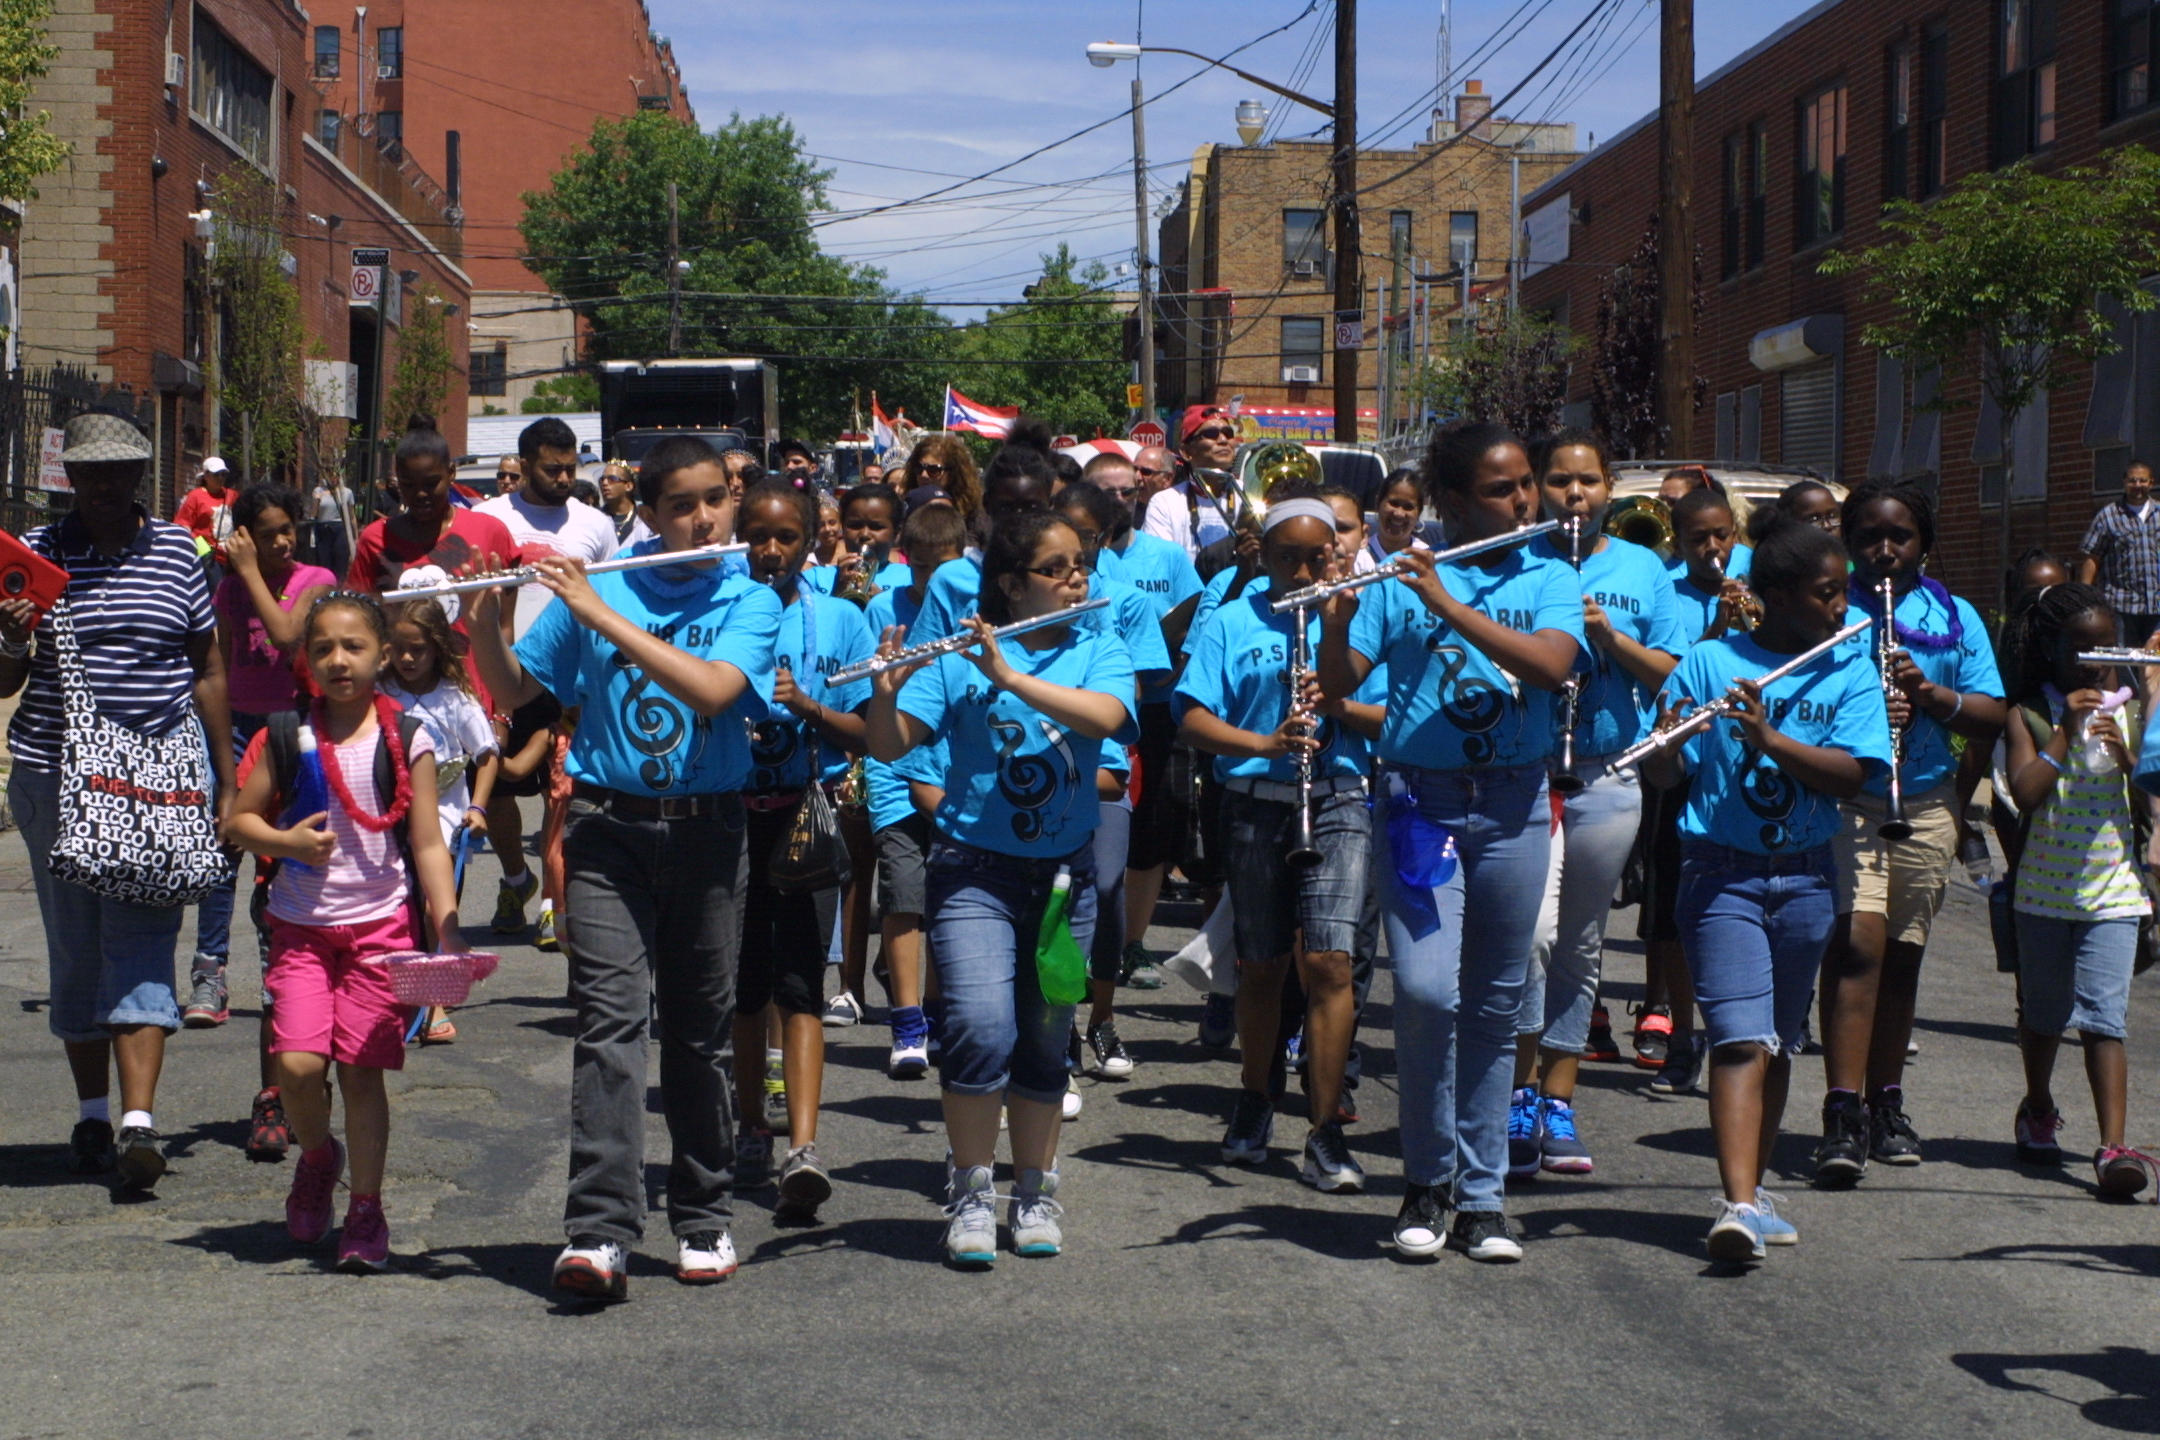 11th Annual Fish Parade highlights youth